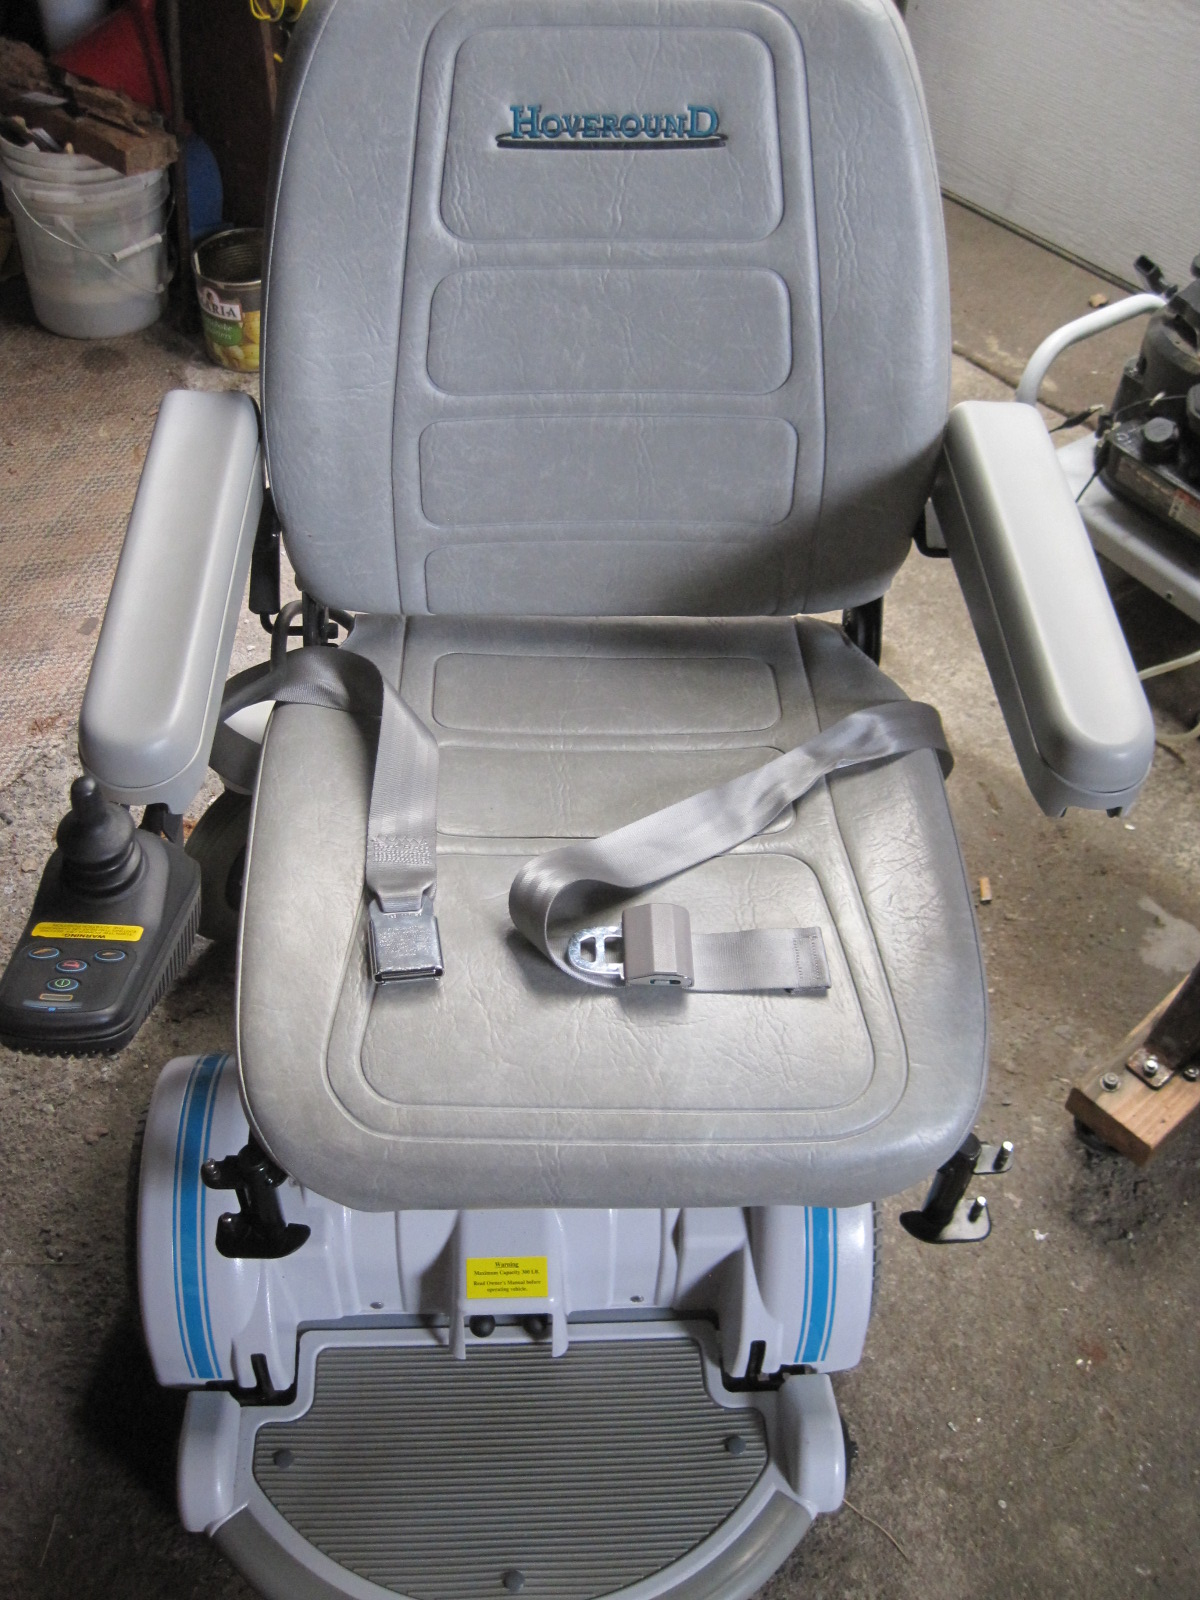 Hoveround Wiring Diagram Living Motion Pre Owned Used Mpv4 Charger Left Armrest Assembly For The